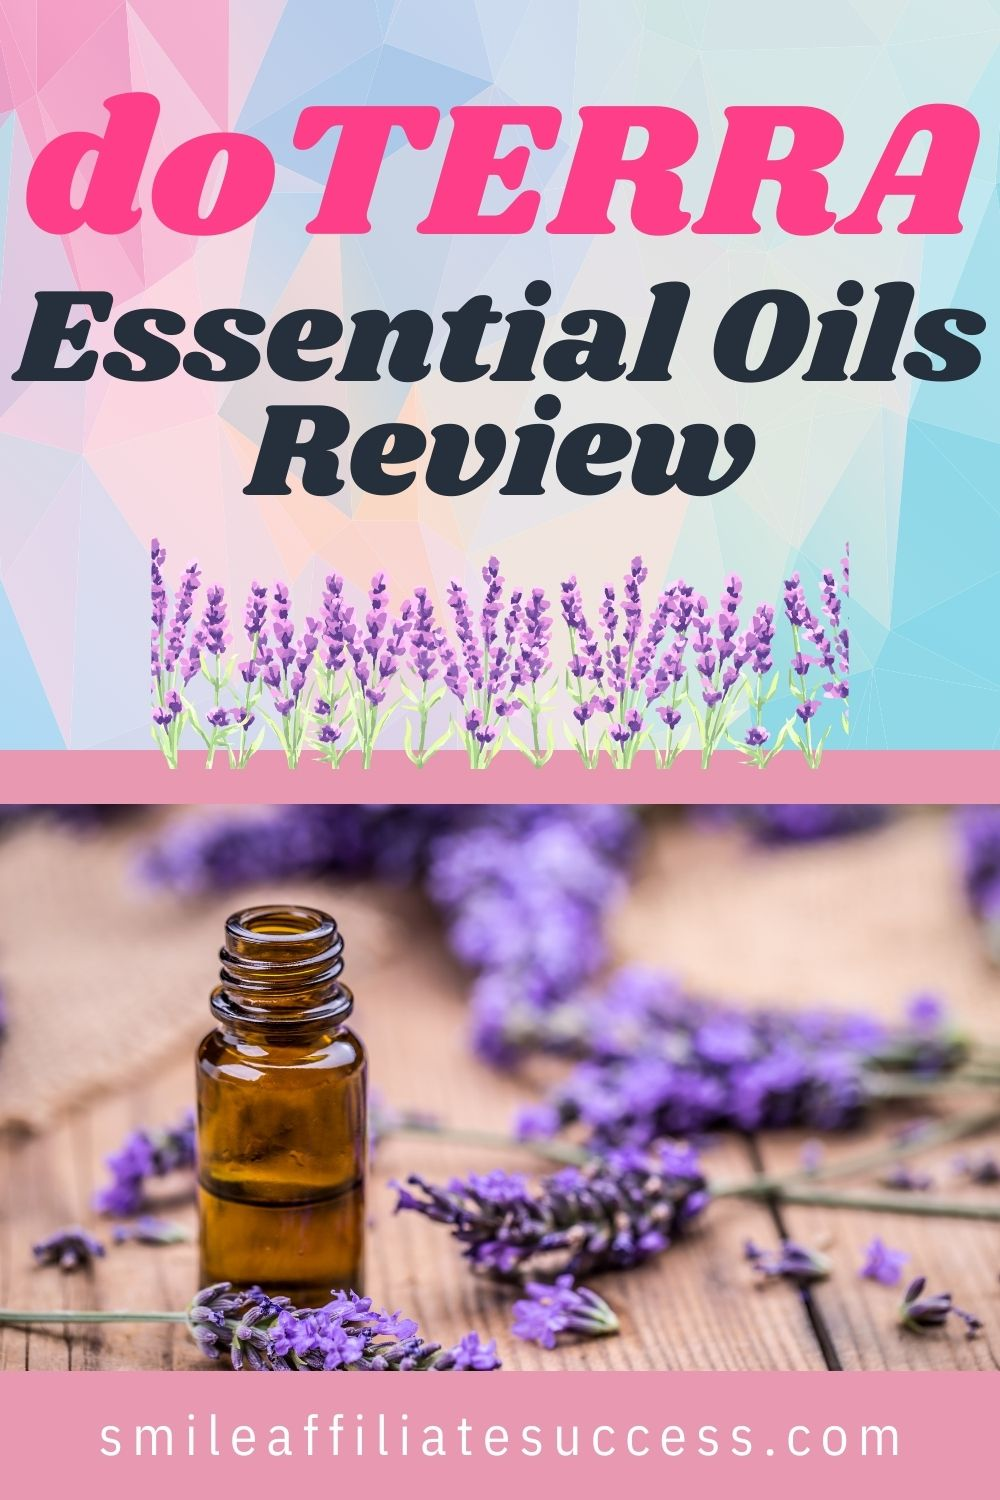 doTERRA Essential Oils Review - Is It A Scam?